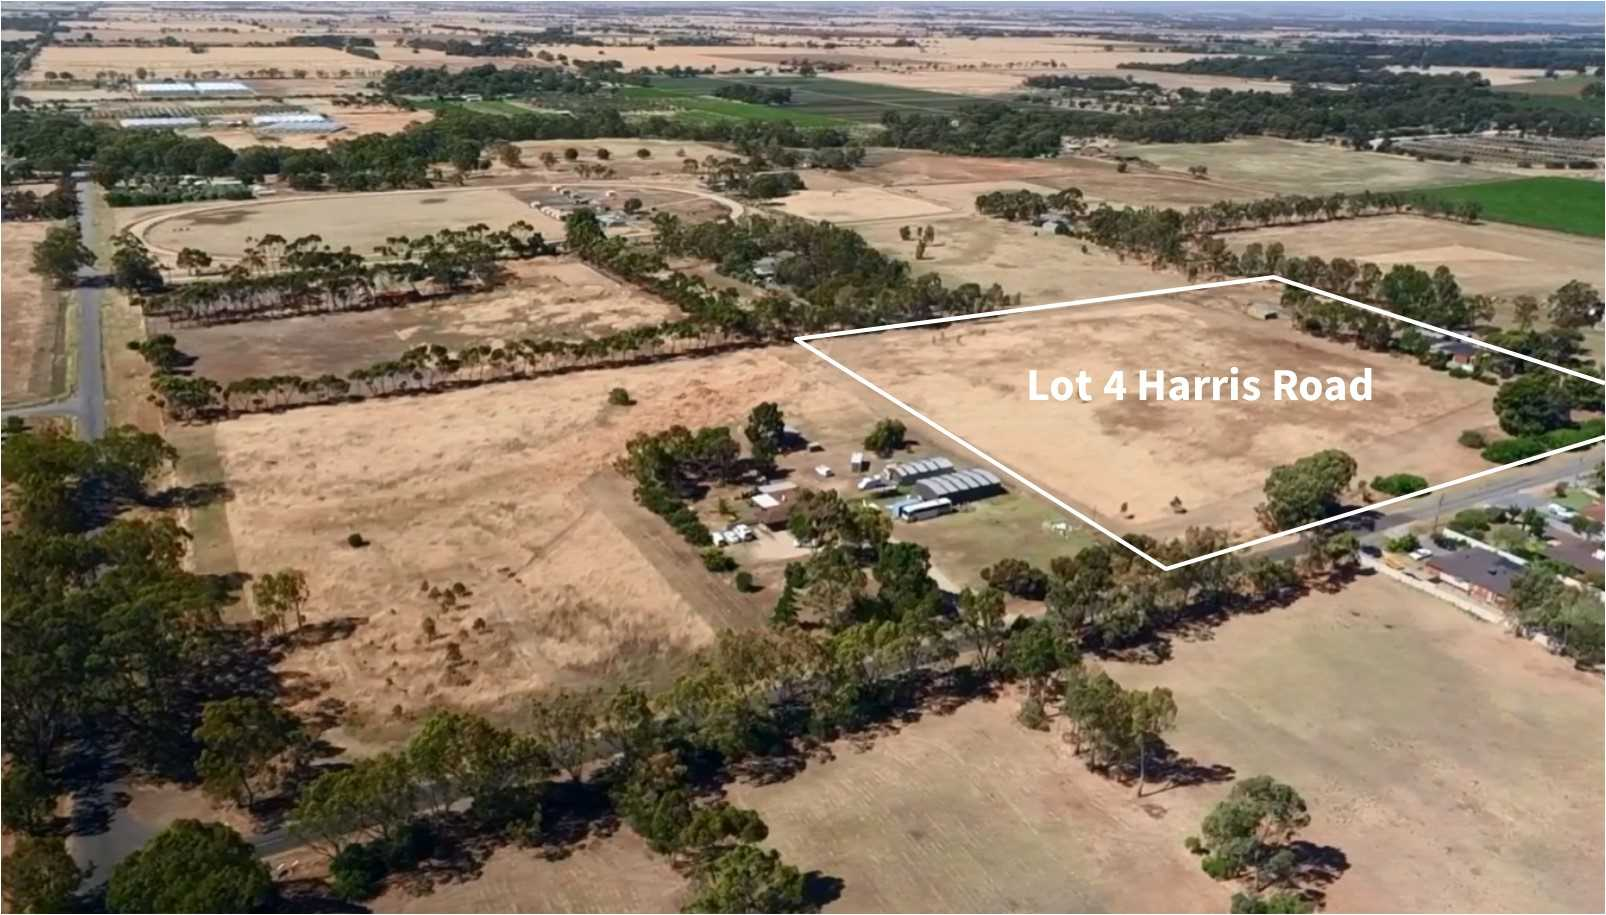 lot 4 Harris rd Under Contract! Re-Zoned & Rare 20 Acres!